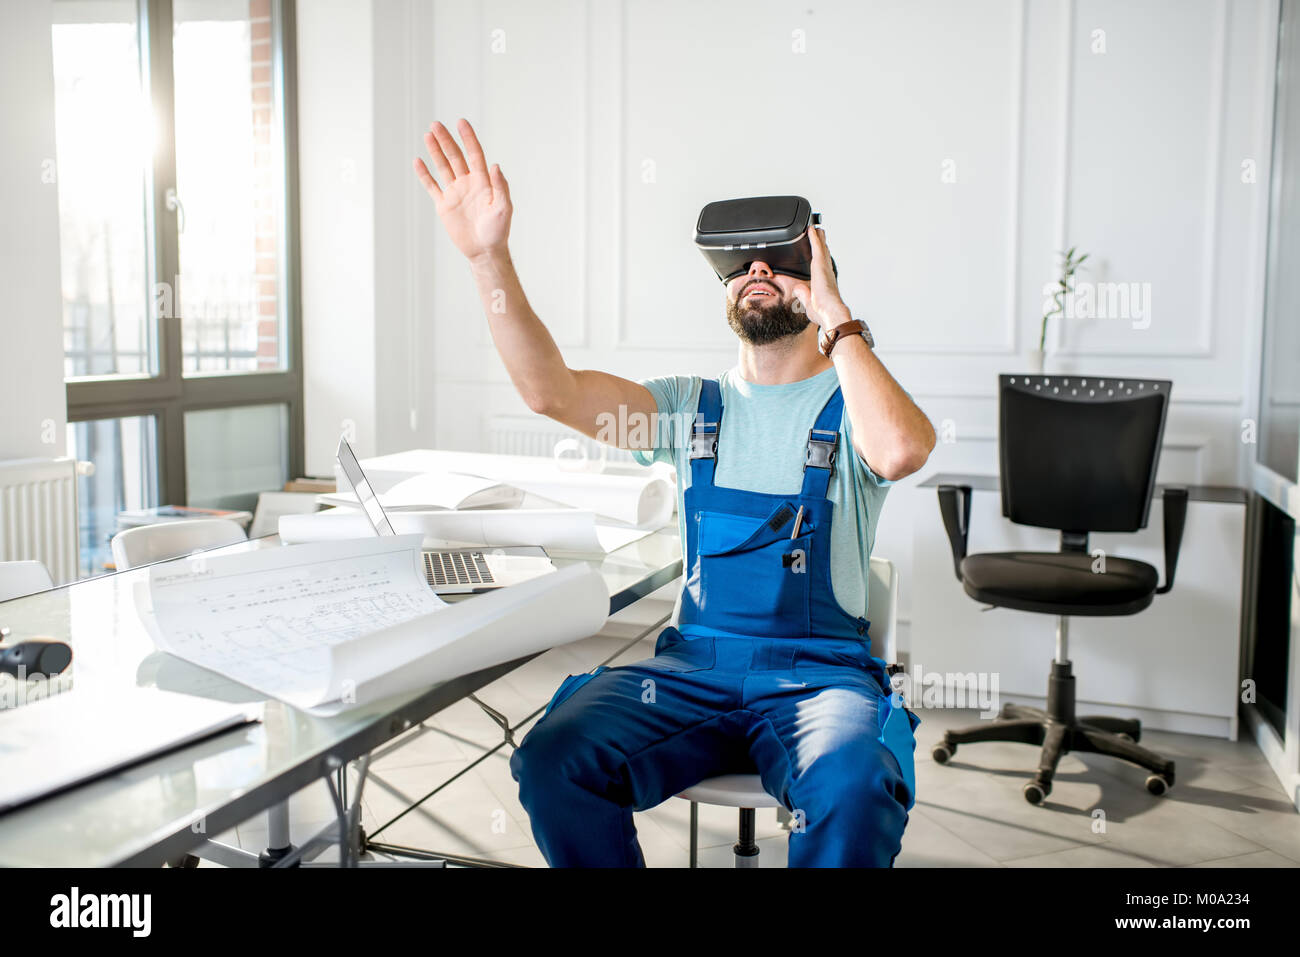 Foreman using vr glasses to imagine projected environment - Stock Image